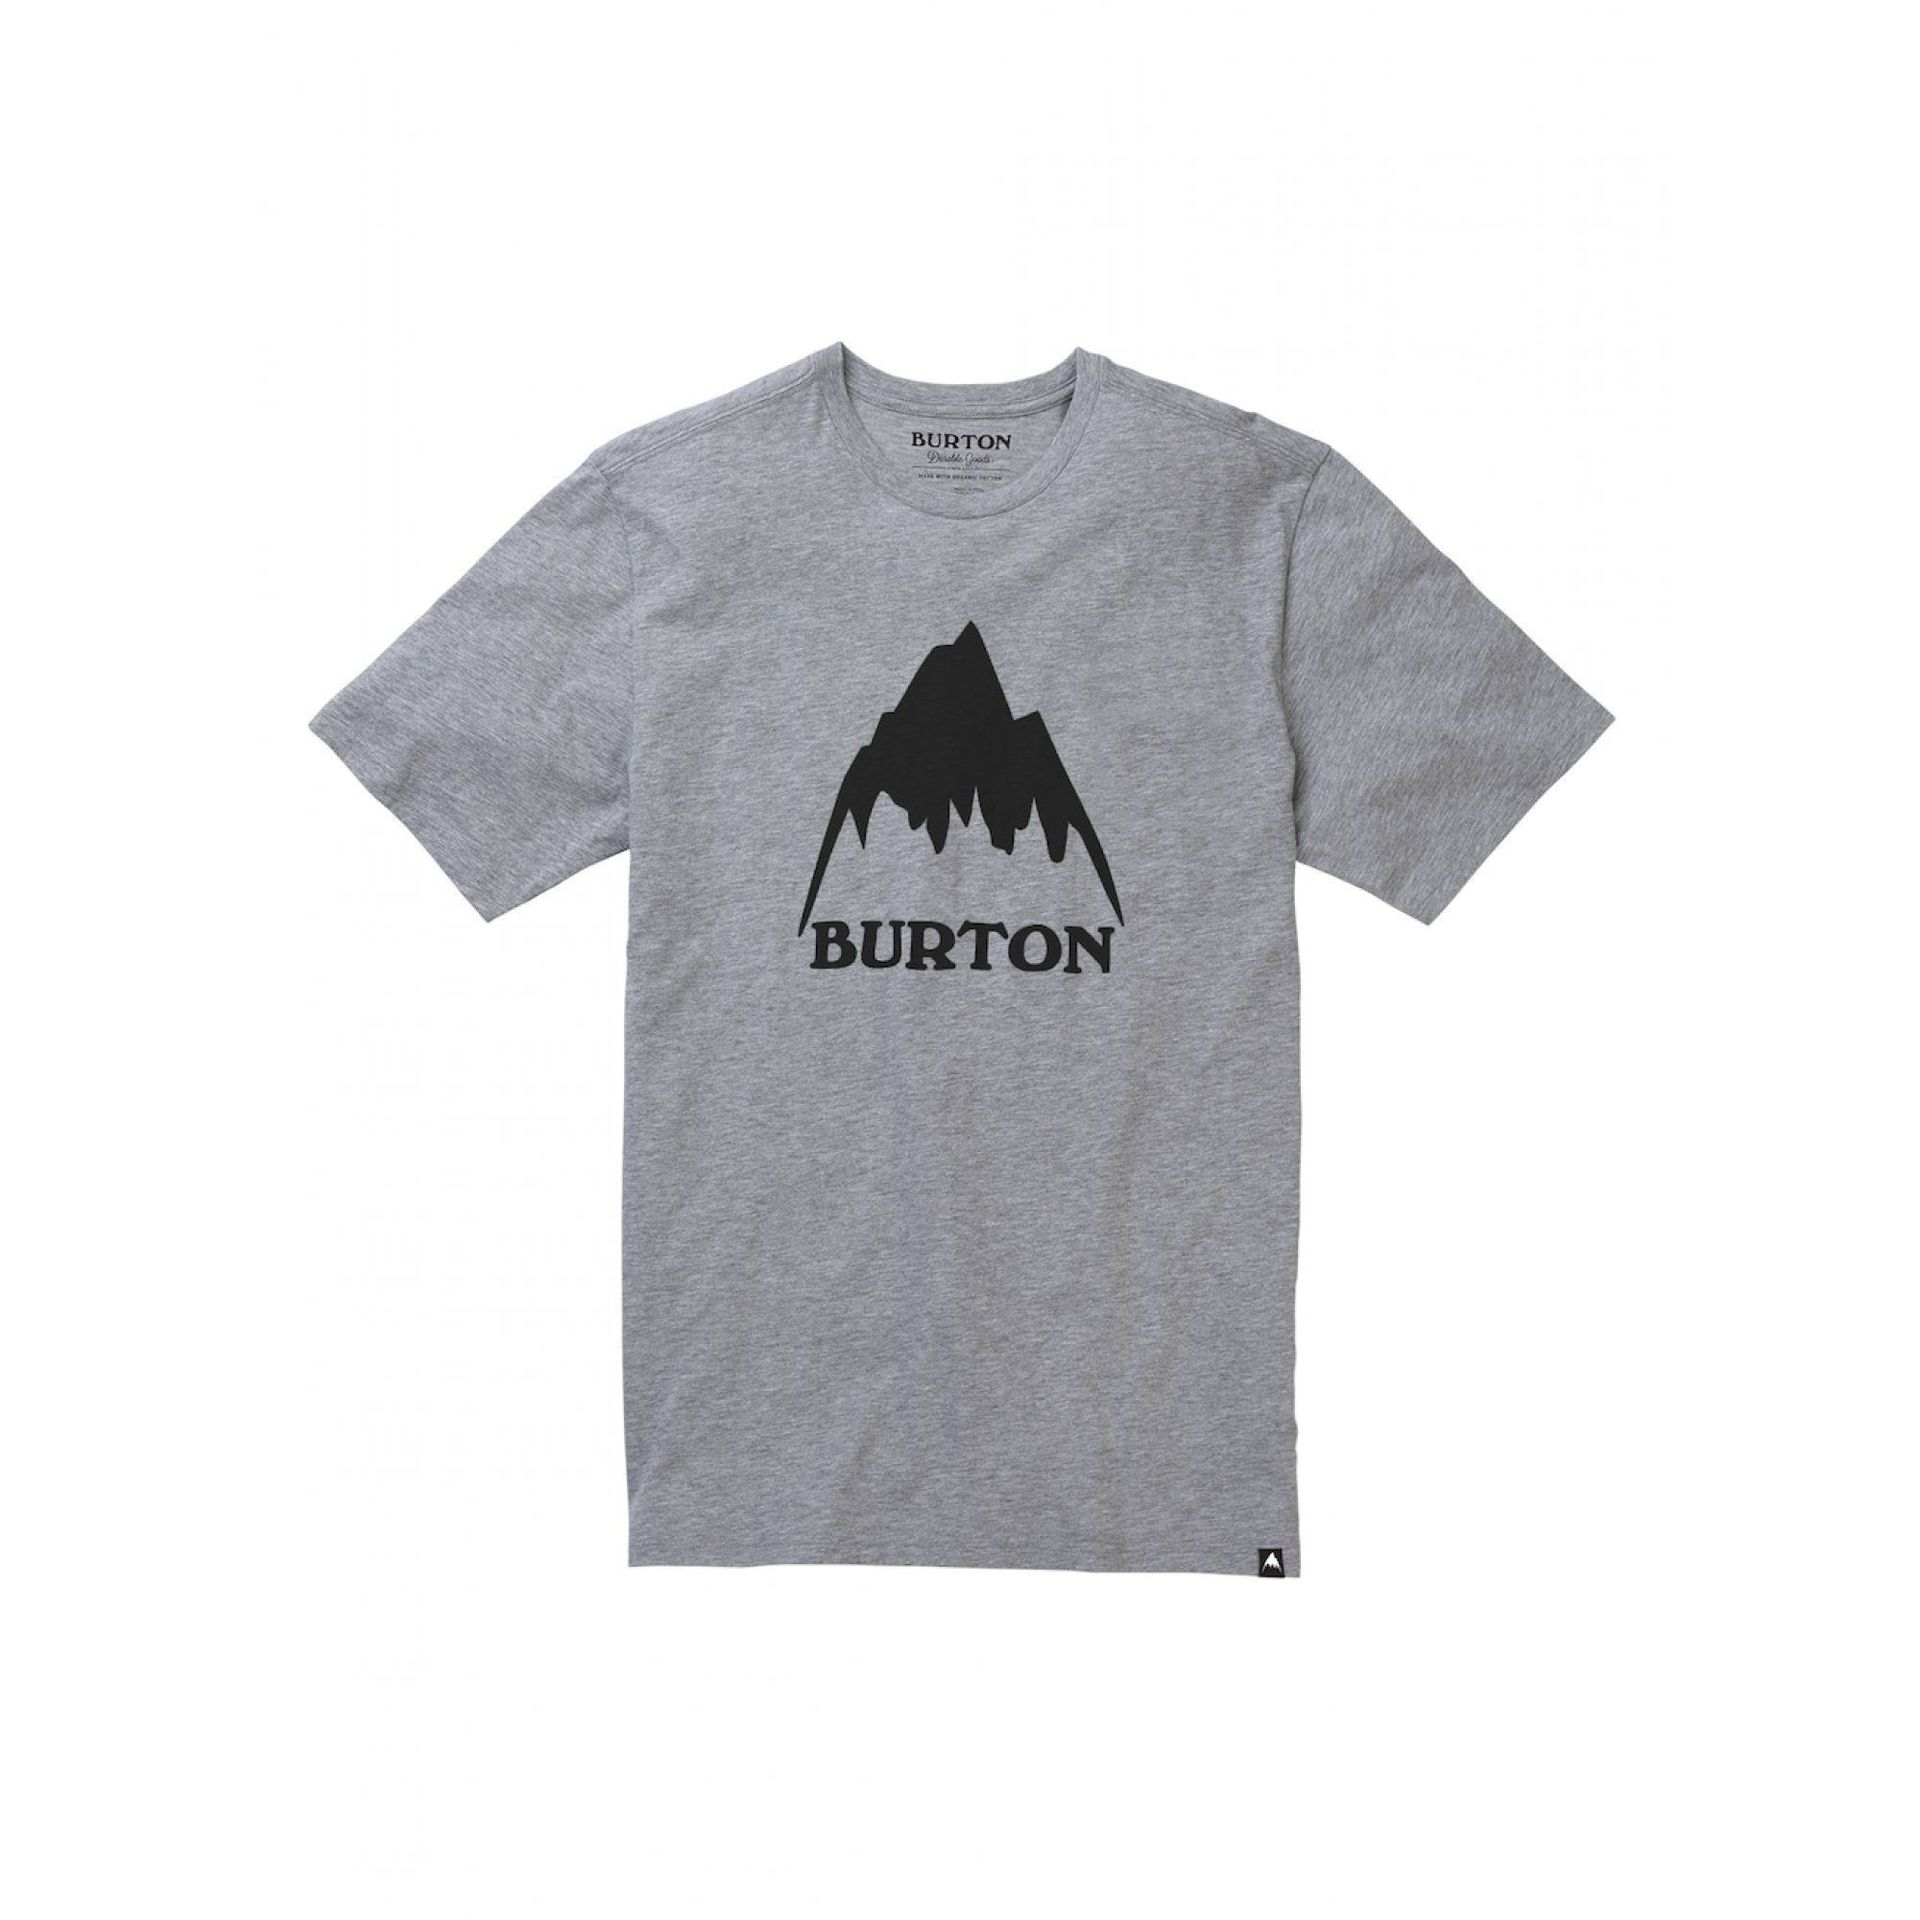 KOSZULKA BURTON CLASSIC MOUNTAIN HIGH GRAY HEATHER 203771-020